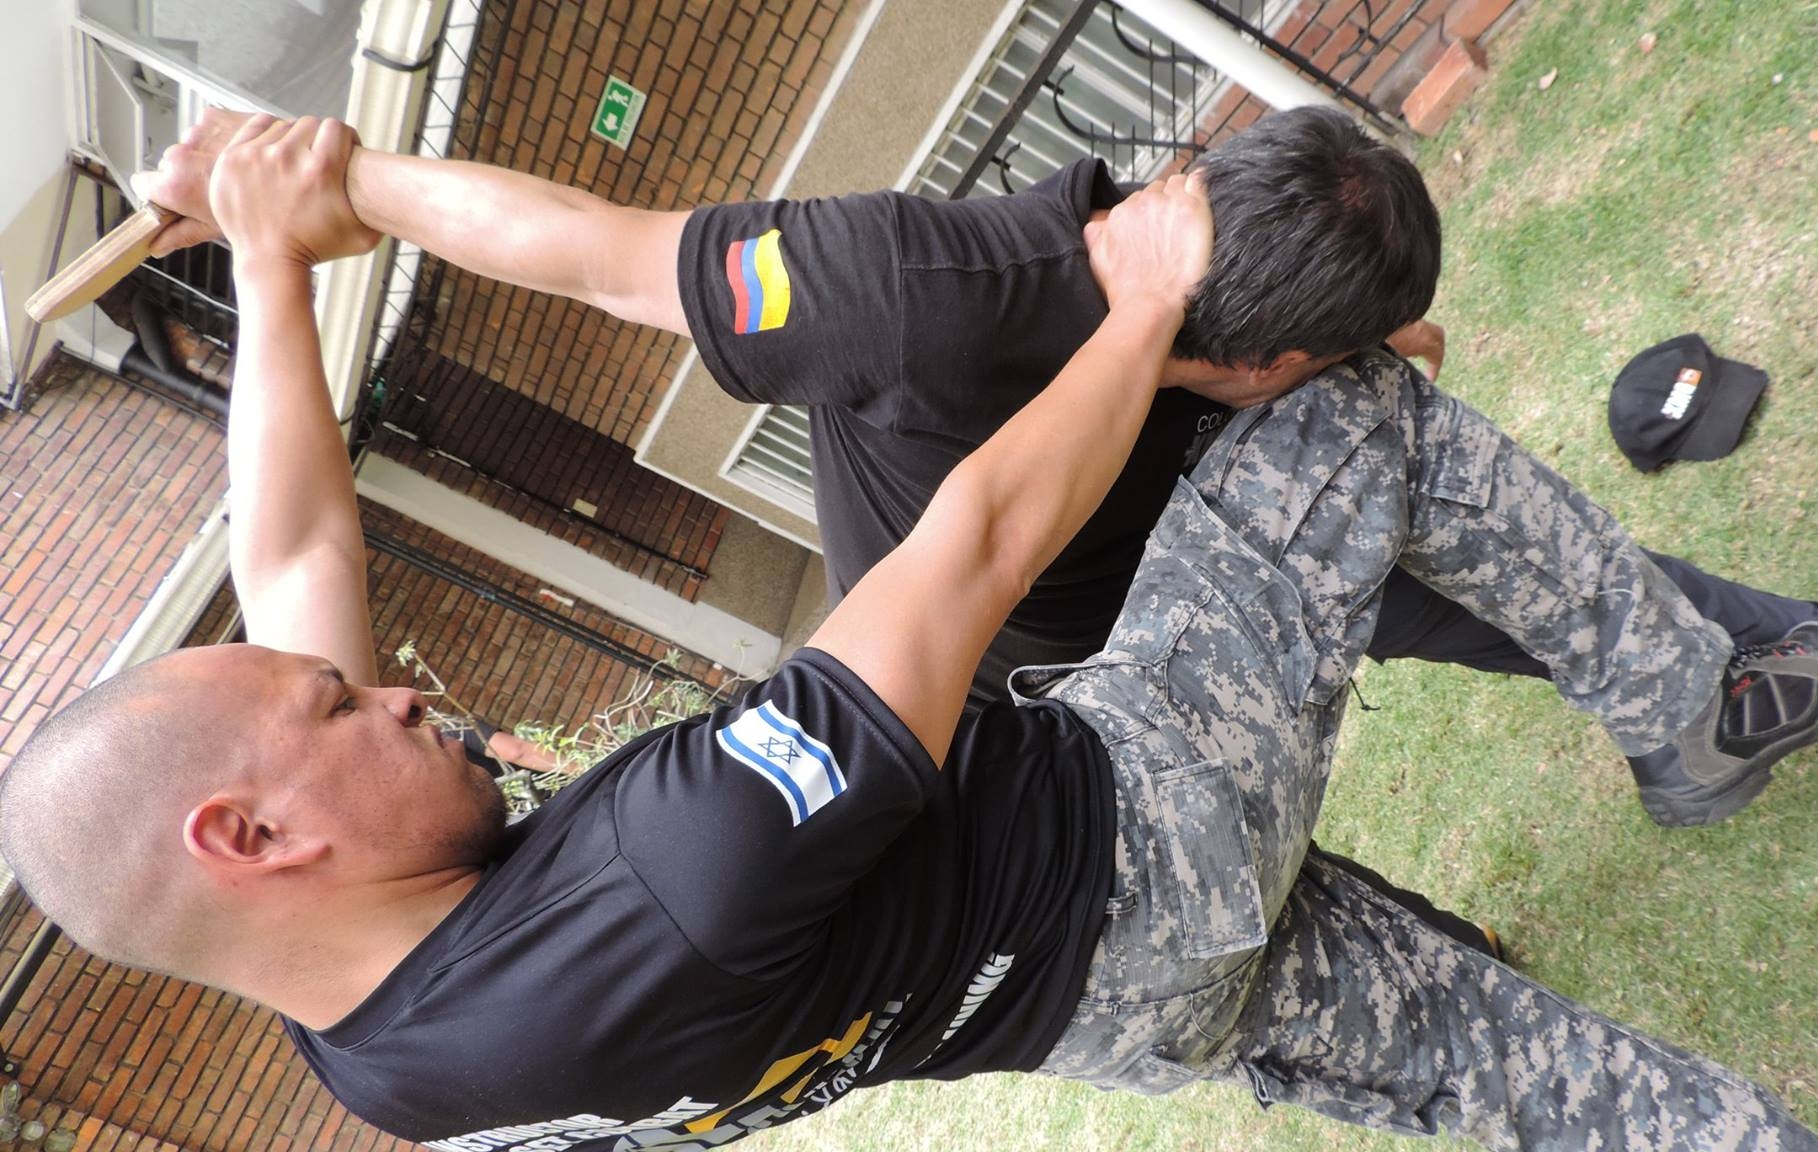 Krav Maga being trained in the military.